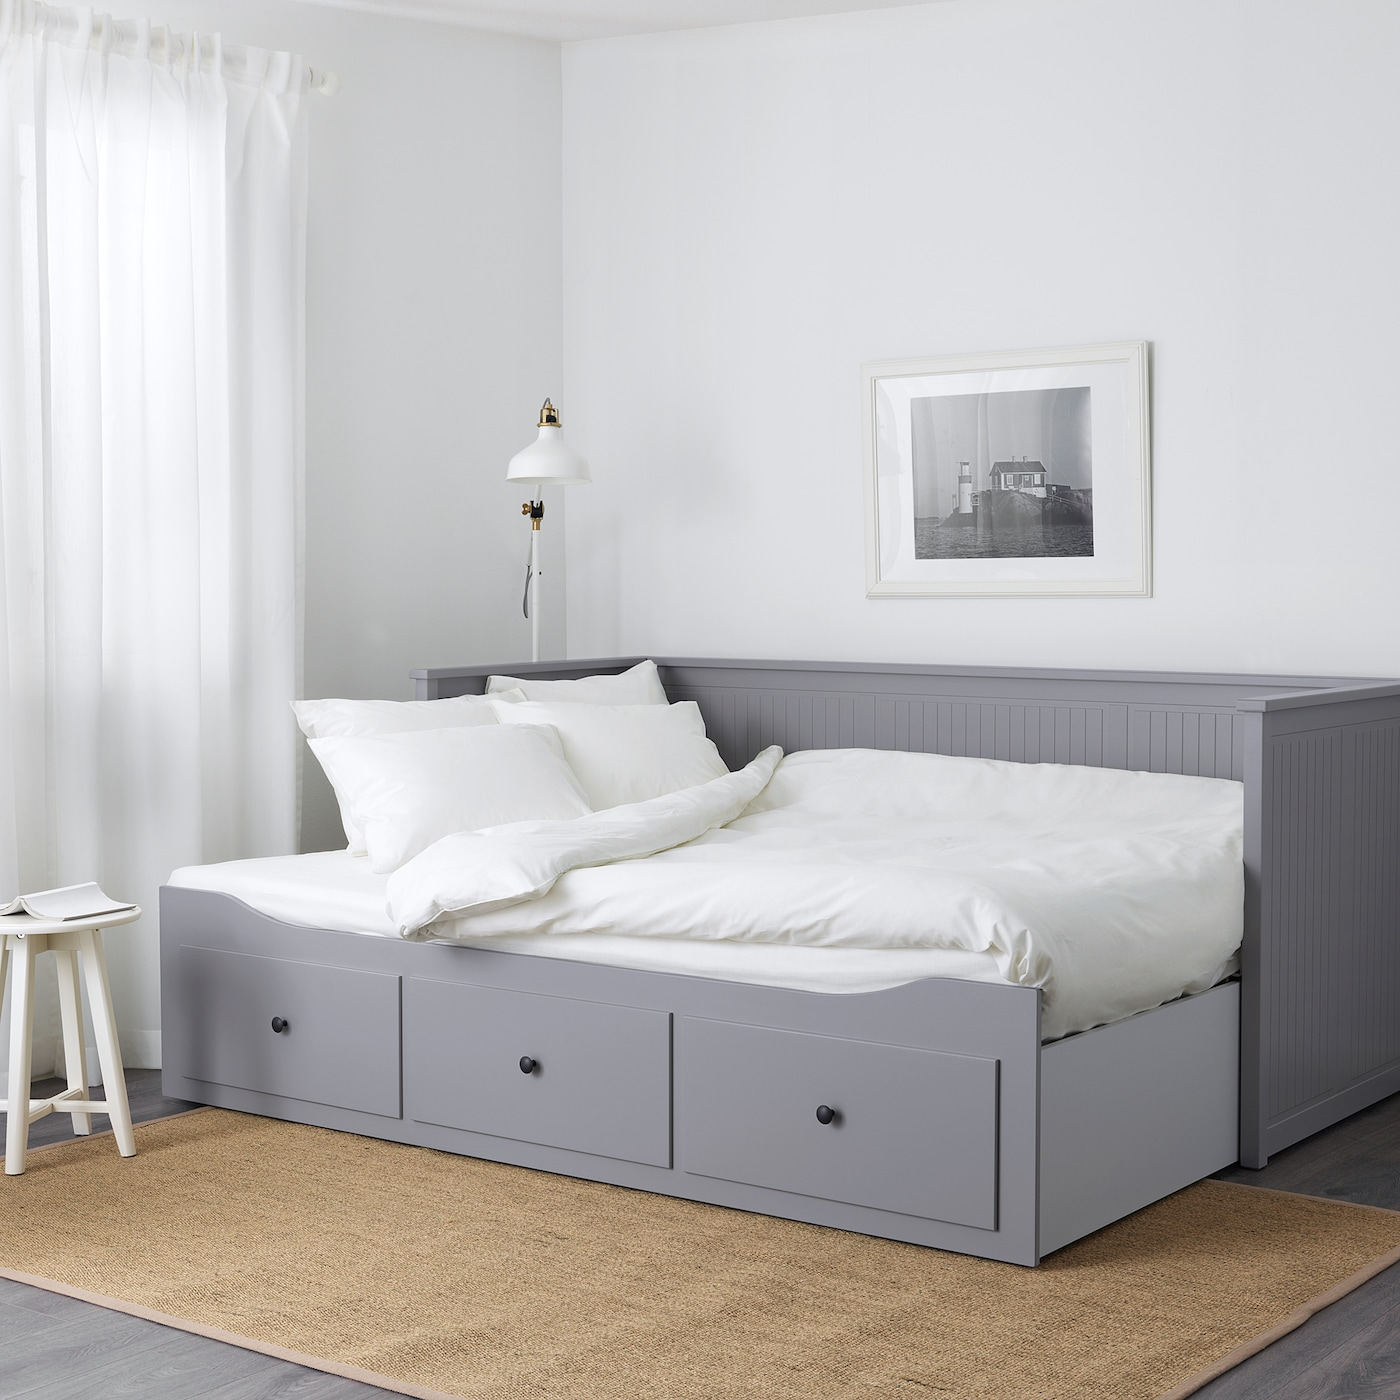 - HEMNES Grey, Moshult Firm, Day-bed W 3 Drawers/2 Mattresses